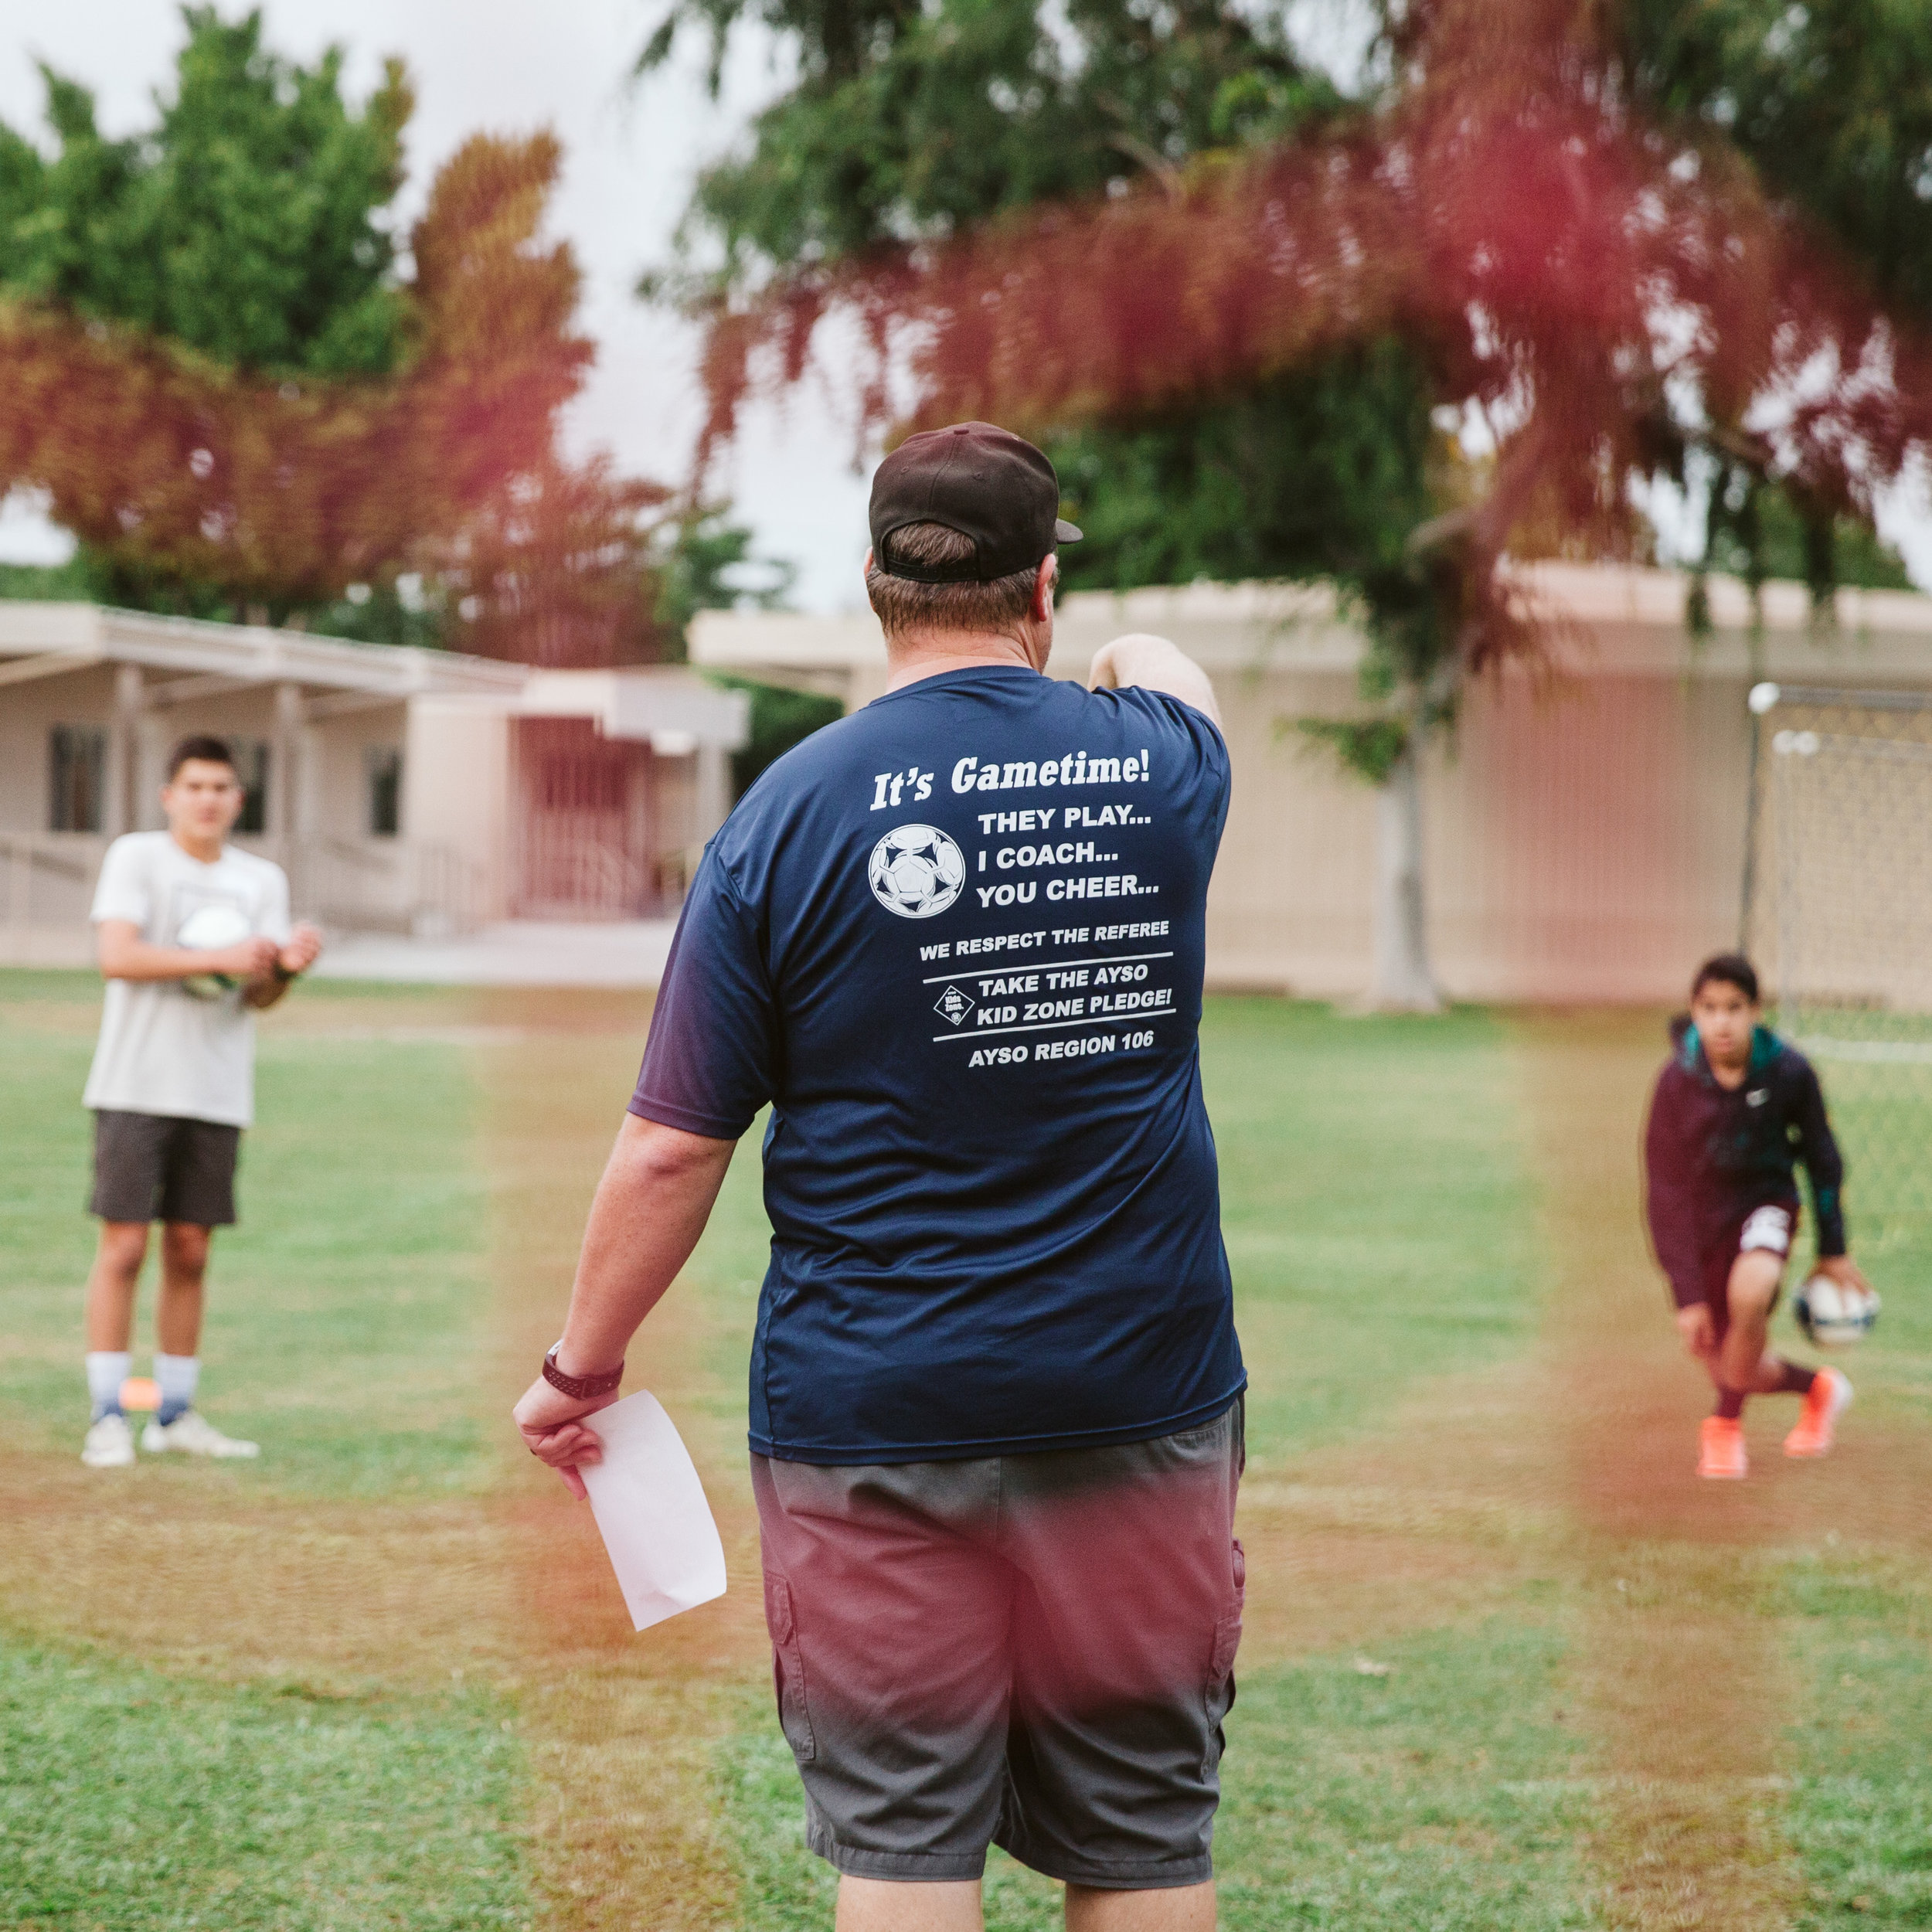 OUR CITY SPORTS CAMP COACH - If playing soccer, flag football, basketball and other fun games sounds like a lively summer night to you, please join us as an Our City Sports Camp coach! During the summer at Ramona Elementary School, we provide a low cost sports camp for kids in the surrounding community.